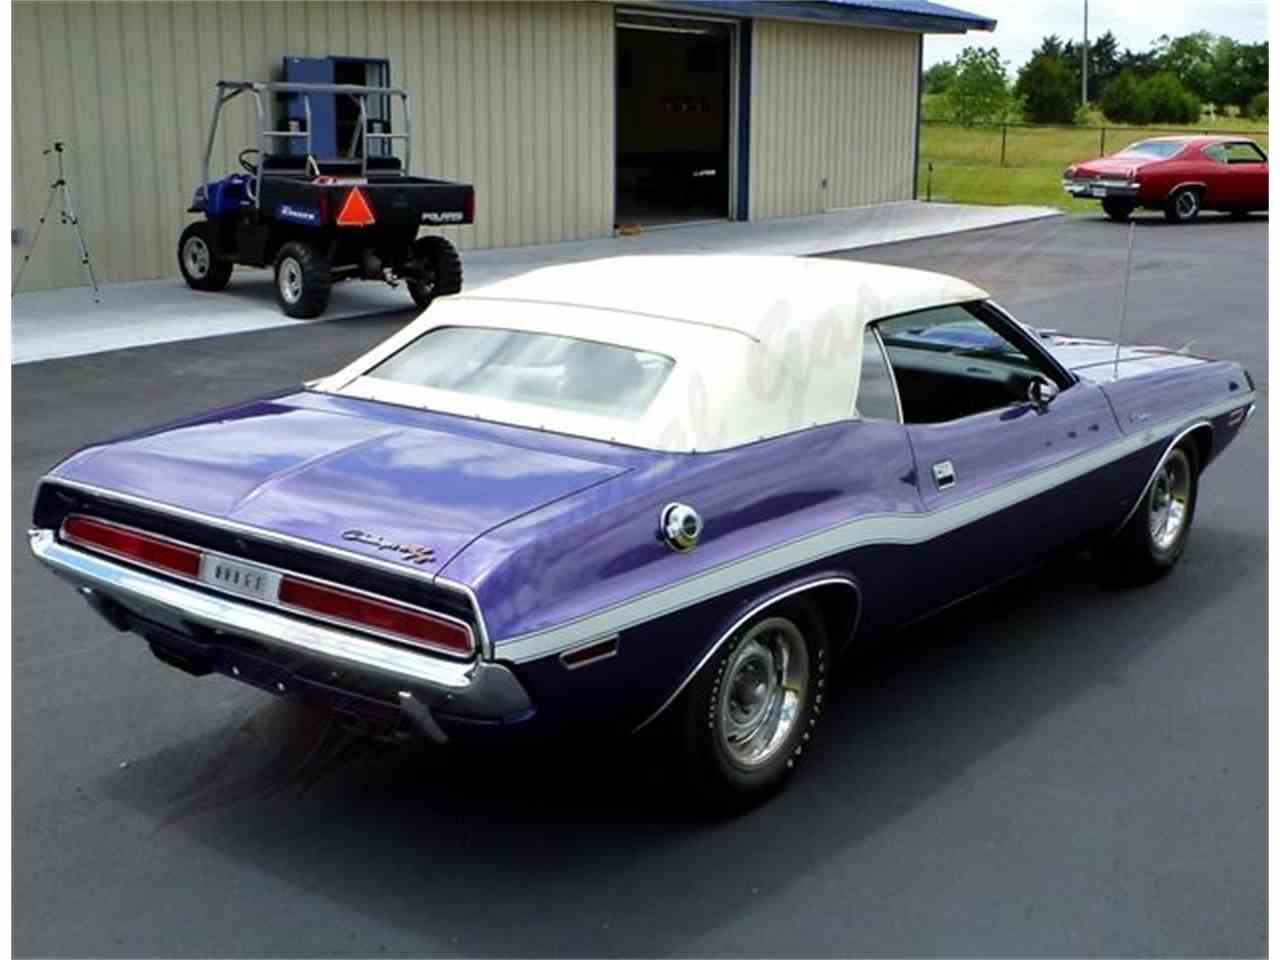 Large Picture of '70 CHALLENGER CONVERTIBLE R/T - $189,500.00 - BVHV